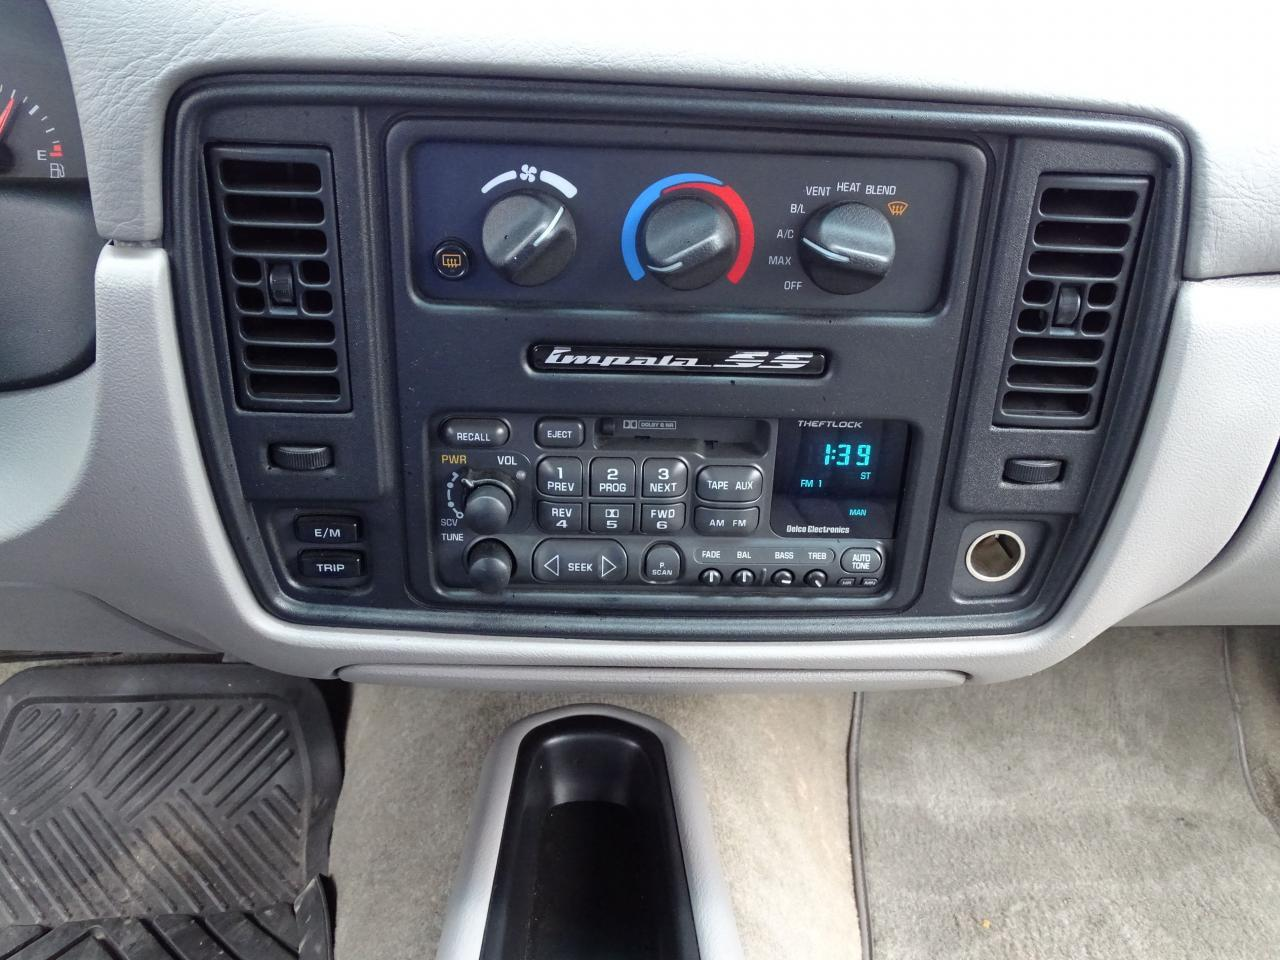 Large Picture of 1996 Impala located in O'Fallon Illinois - $19,000.00 Offered by Gateway Classic Cars - St. Louis - QB5K